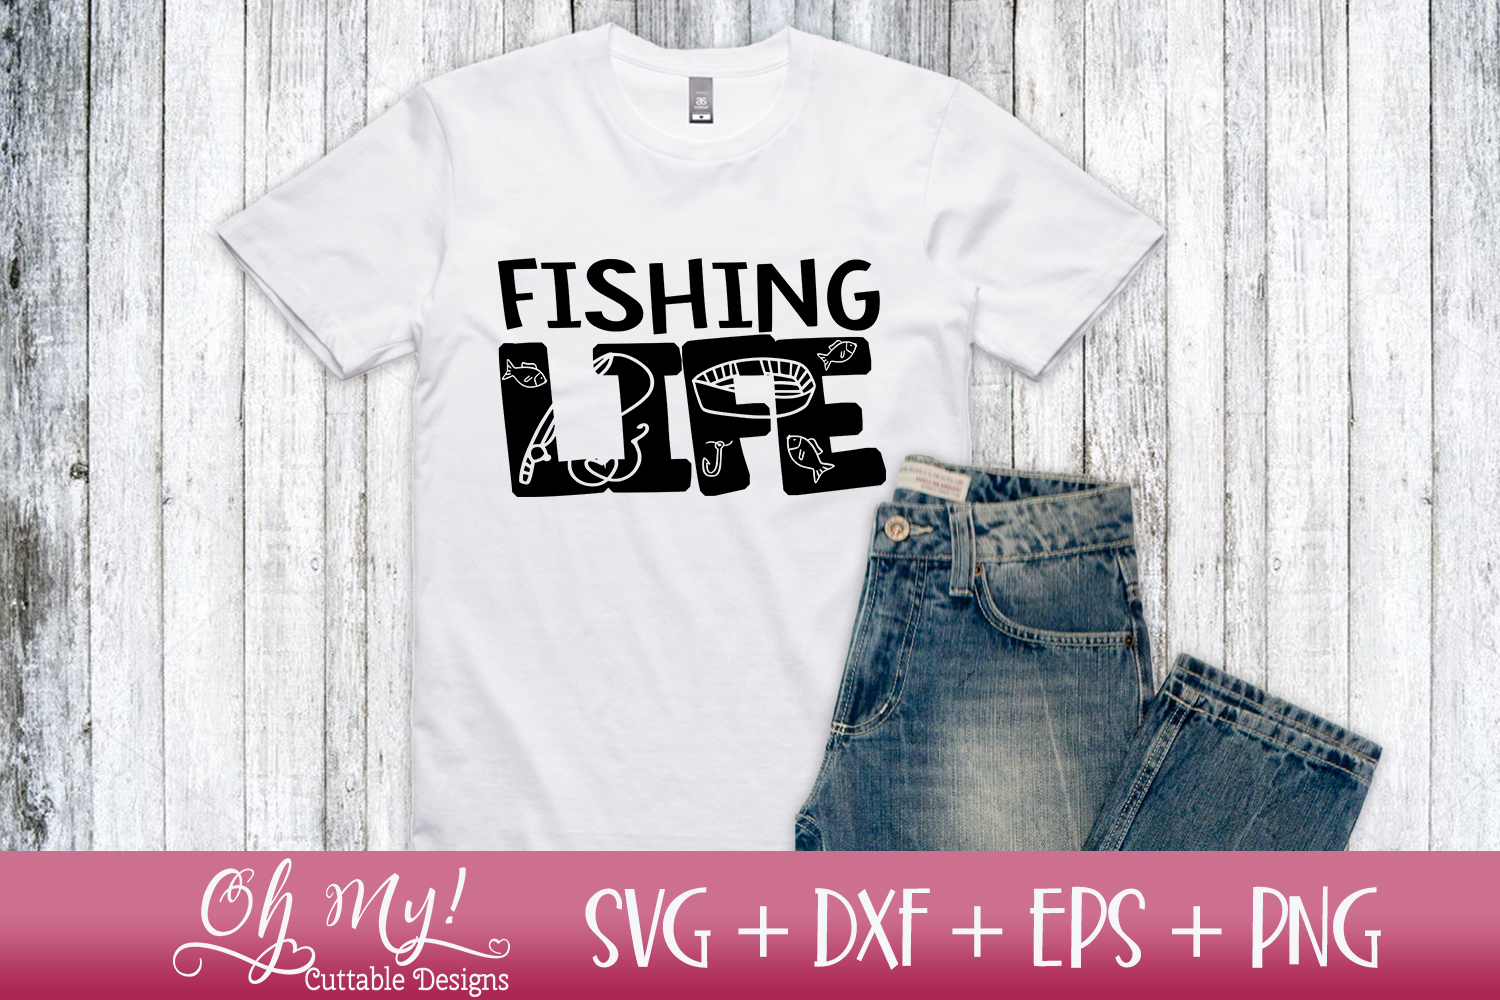 Fishing Life - SVG DXF EPS PNG example image 2